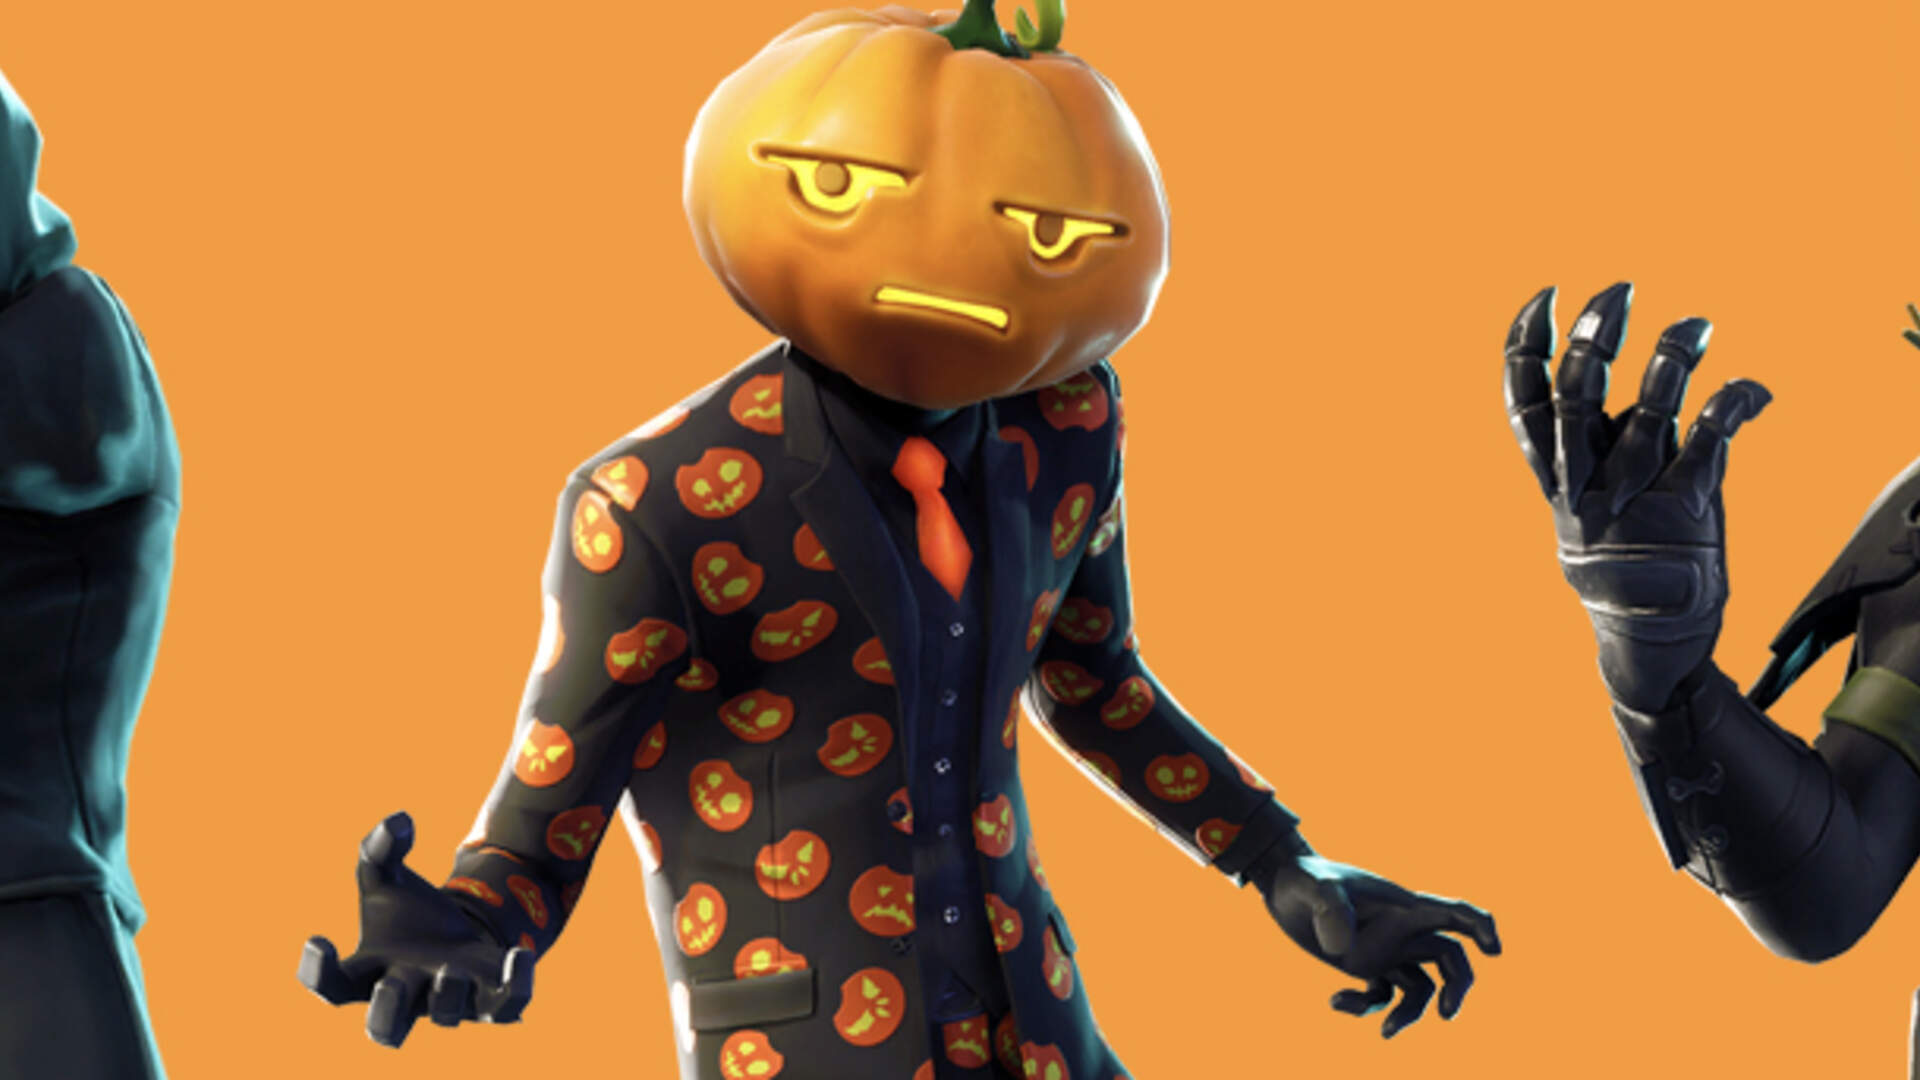 Fortnitemares Start Time - New Challenges and Skins in the Halloween Event